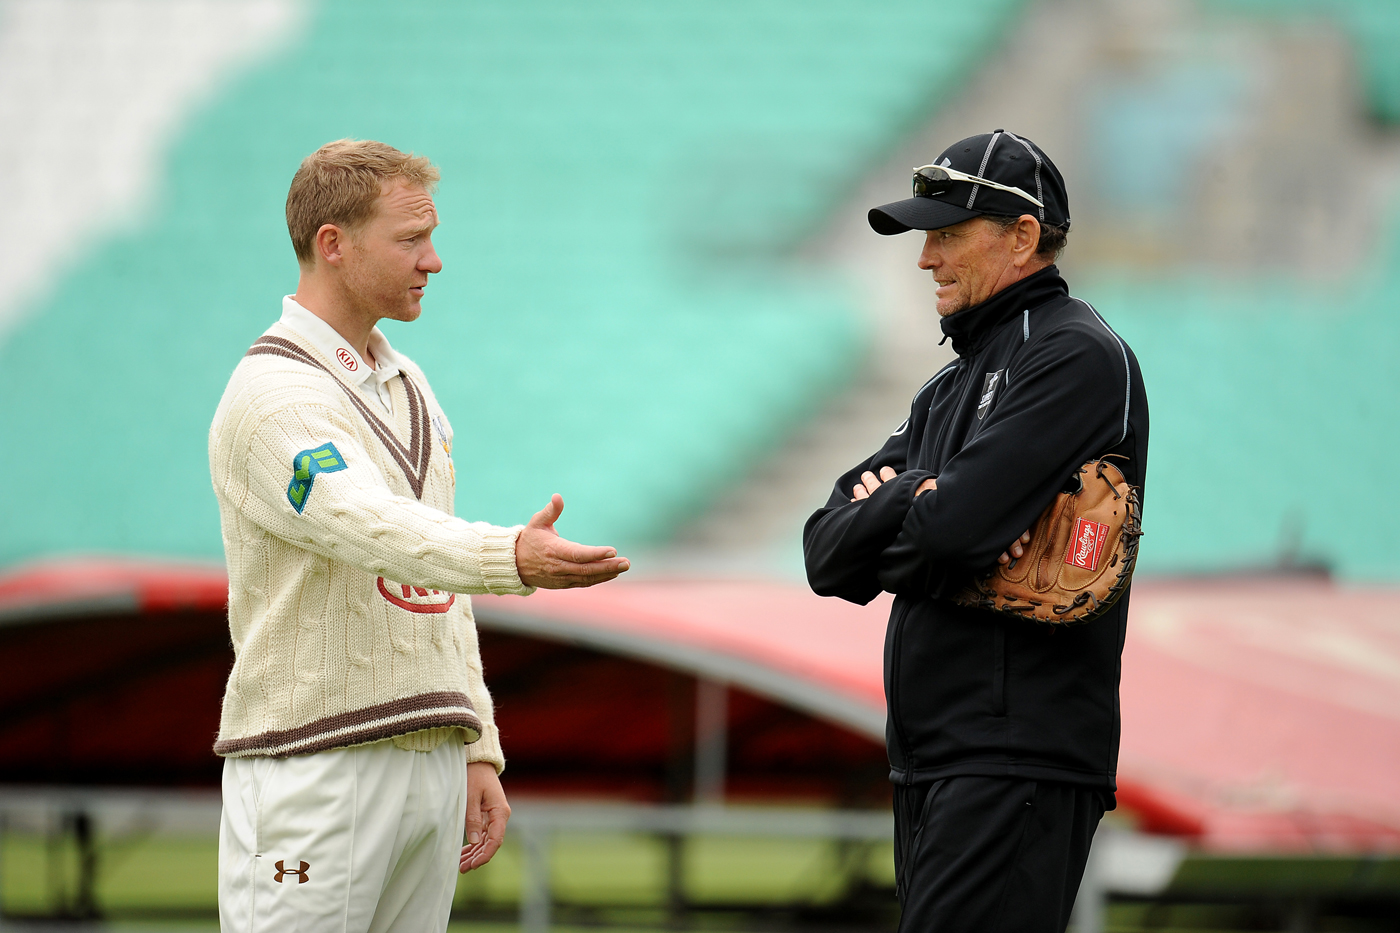 Brains trust: Gareth Batty (left) and Graham Ford